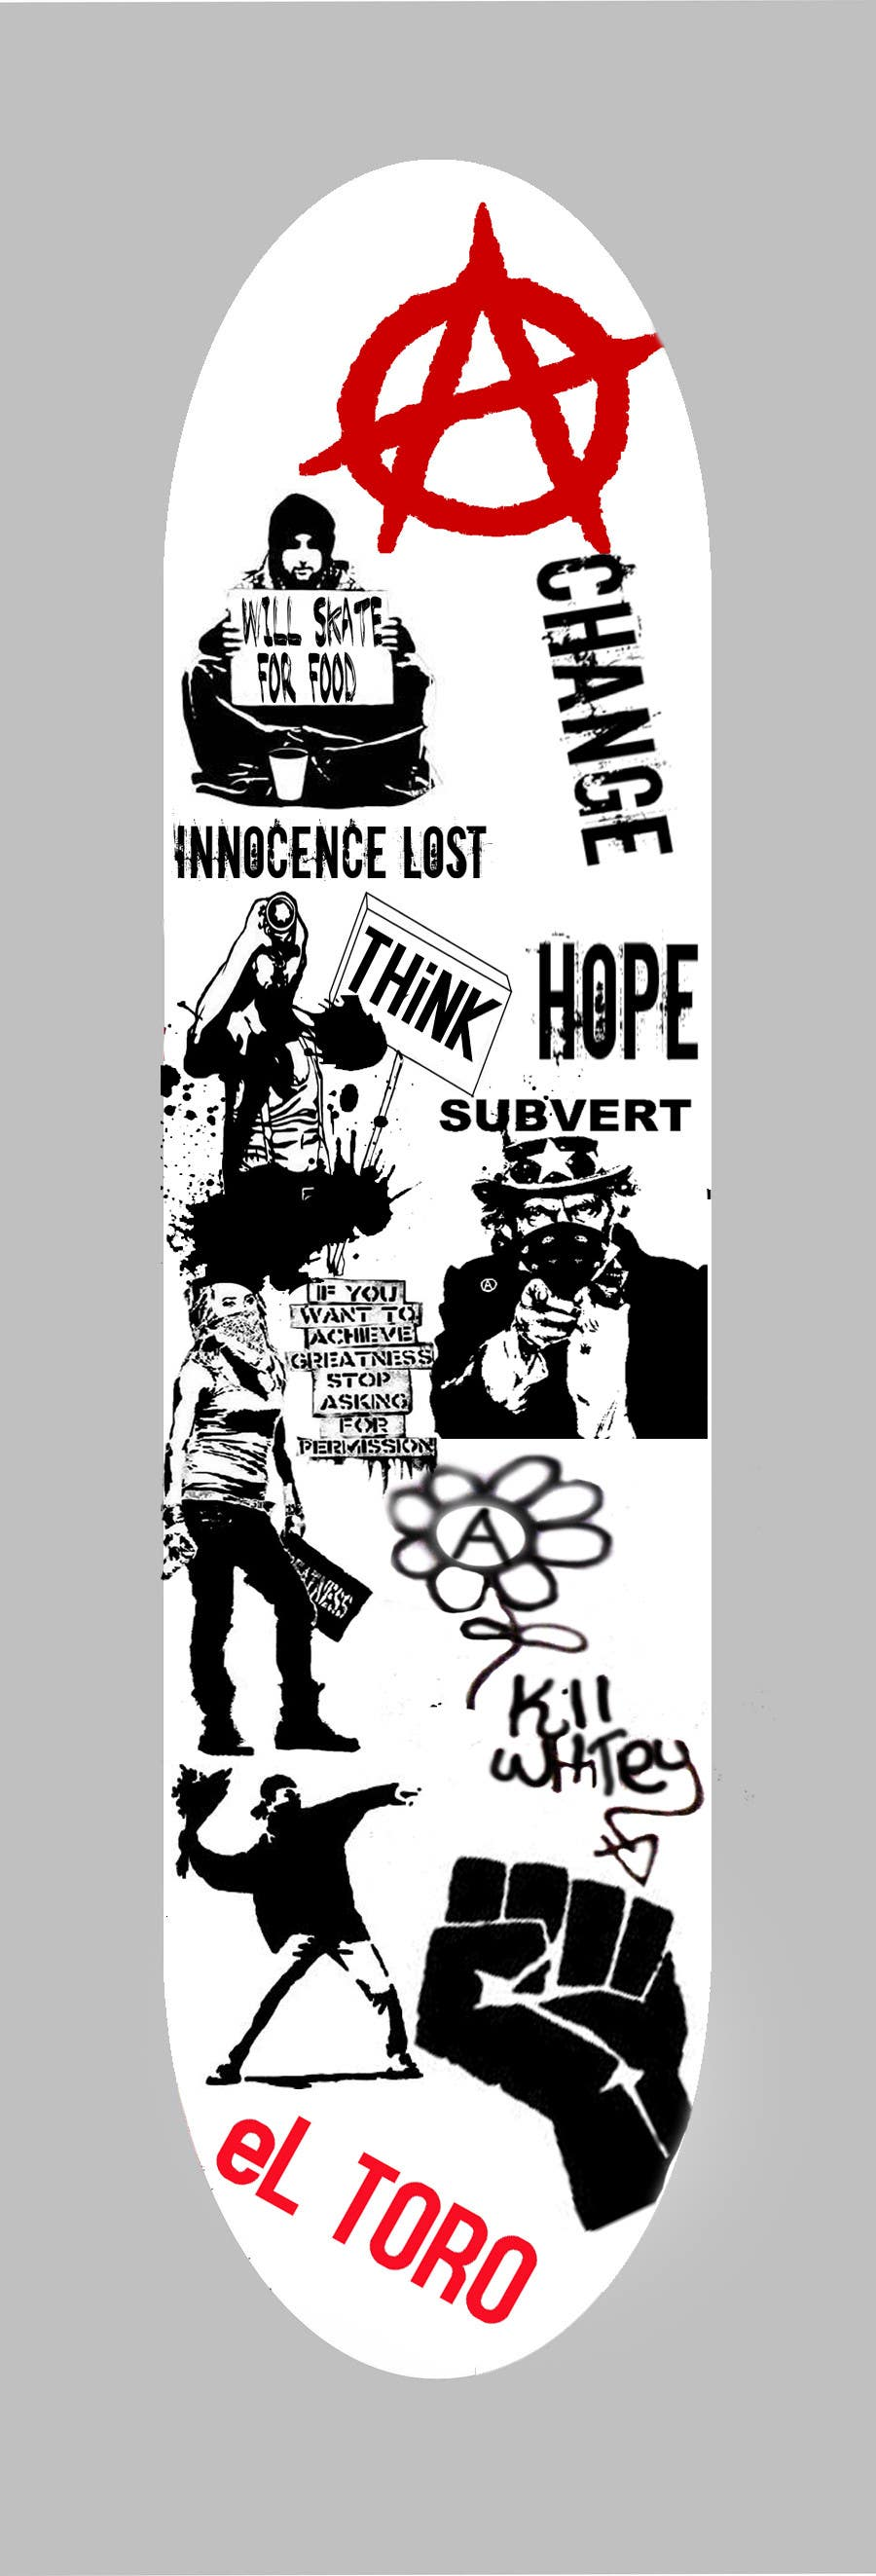 Bài tham dự cuộc thi #                                        10                                      cho                                         Skateboard collage style design with an anarchy theme (pictures provided)